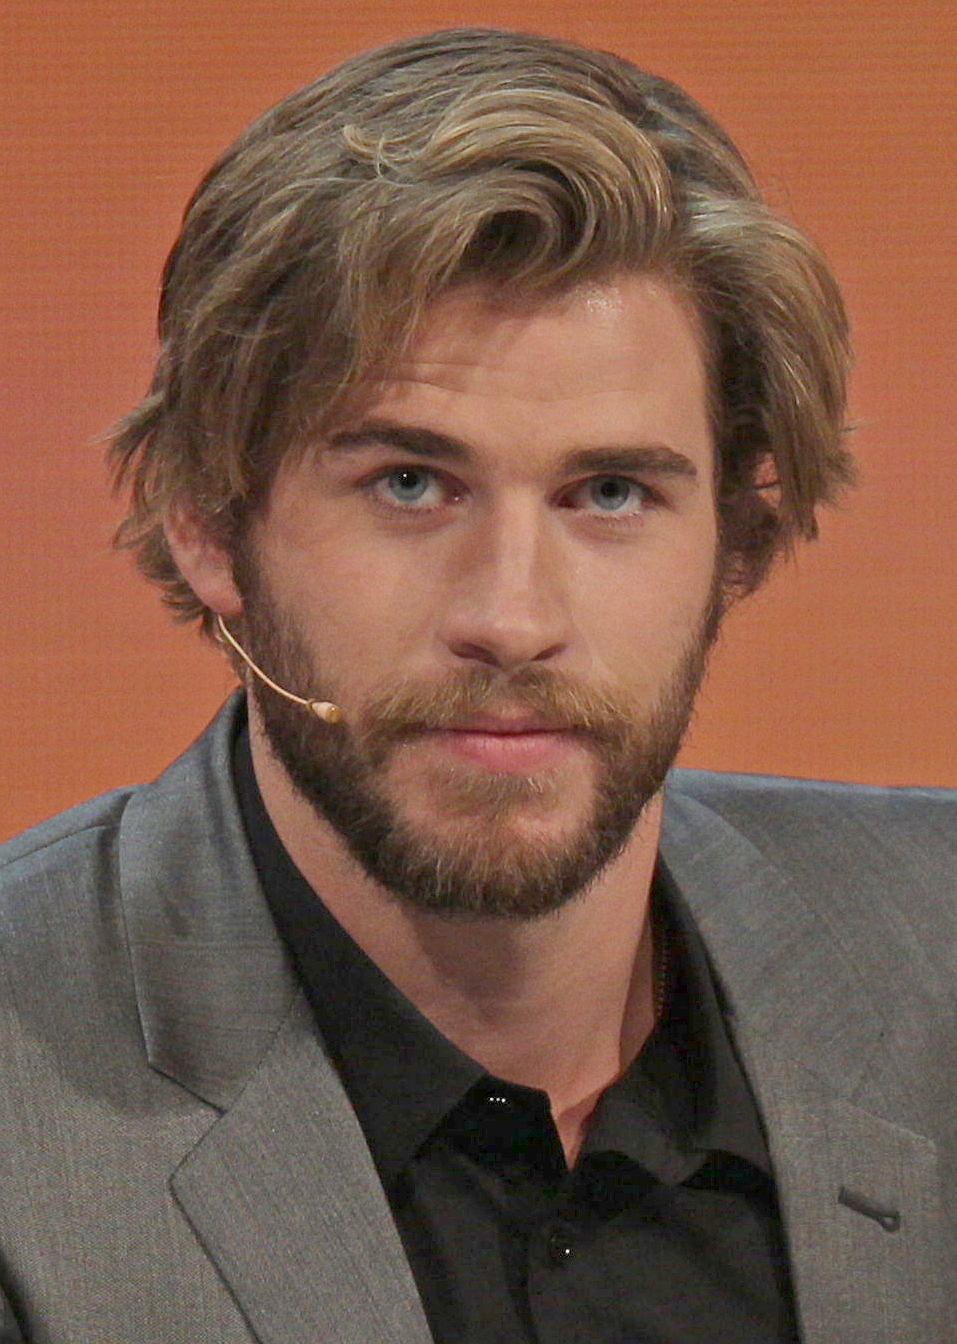 liam hemsworth tumblrliam hemsworth instagram, liam hemsworth height, liam hemsworth gif, liam hemsworth vk, liam hemsworth tumblr, liam hemsworth 2016, liam hemsworth фильмы, liam hemsworth gif hunt, liam hemsworth net worth, liam hemsworth и майли сайрус, liam hemsworth movies, liam hemsworth brother, liam hemsworth and jennifer lawrence, liam hemsworth insta, liam hemsworth png, liam hemsworth dating, liam hemsworth photos, liam hemsworth age, liam hemsworth and chris hemsworth, liam hemsworth natal chart